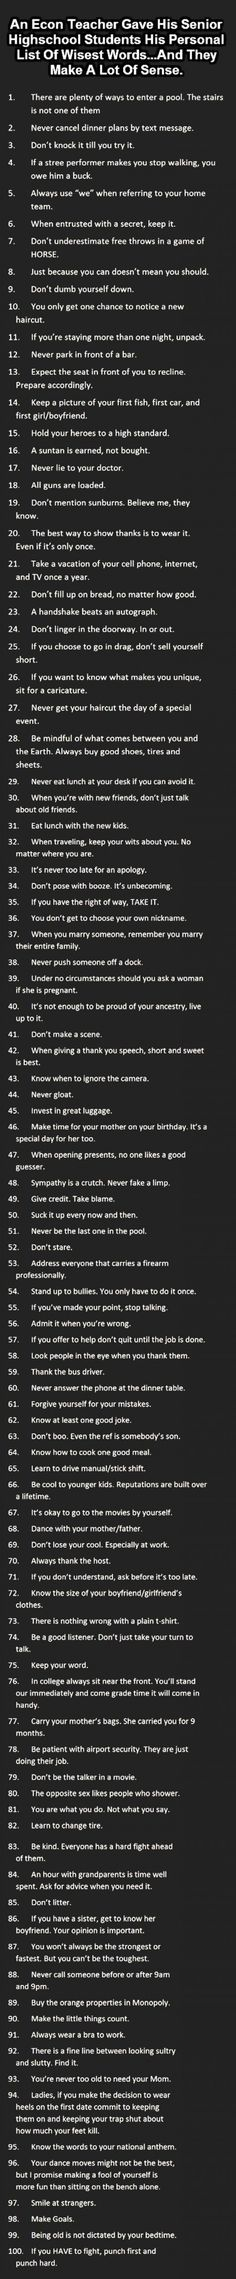 Wise Words! Love this List! #Quotes #Words #Wisdom #Inspiration